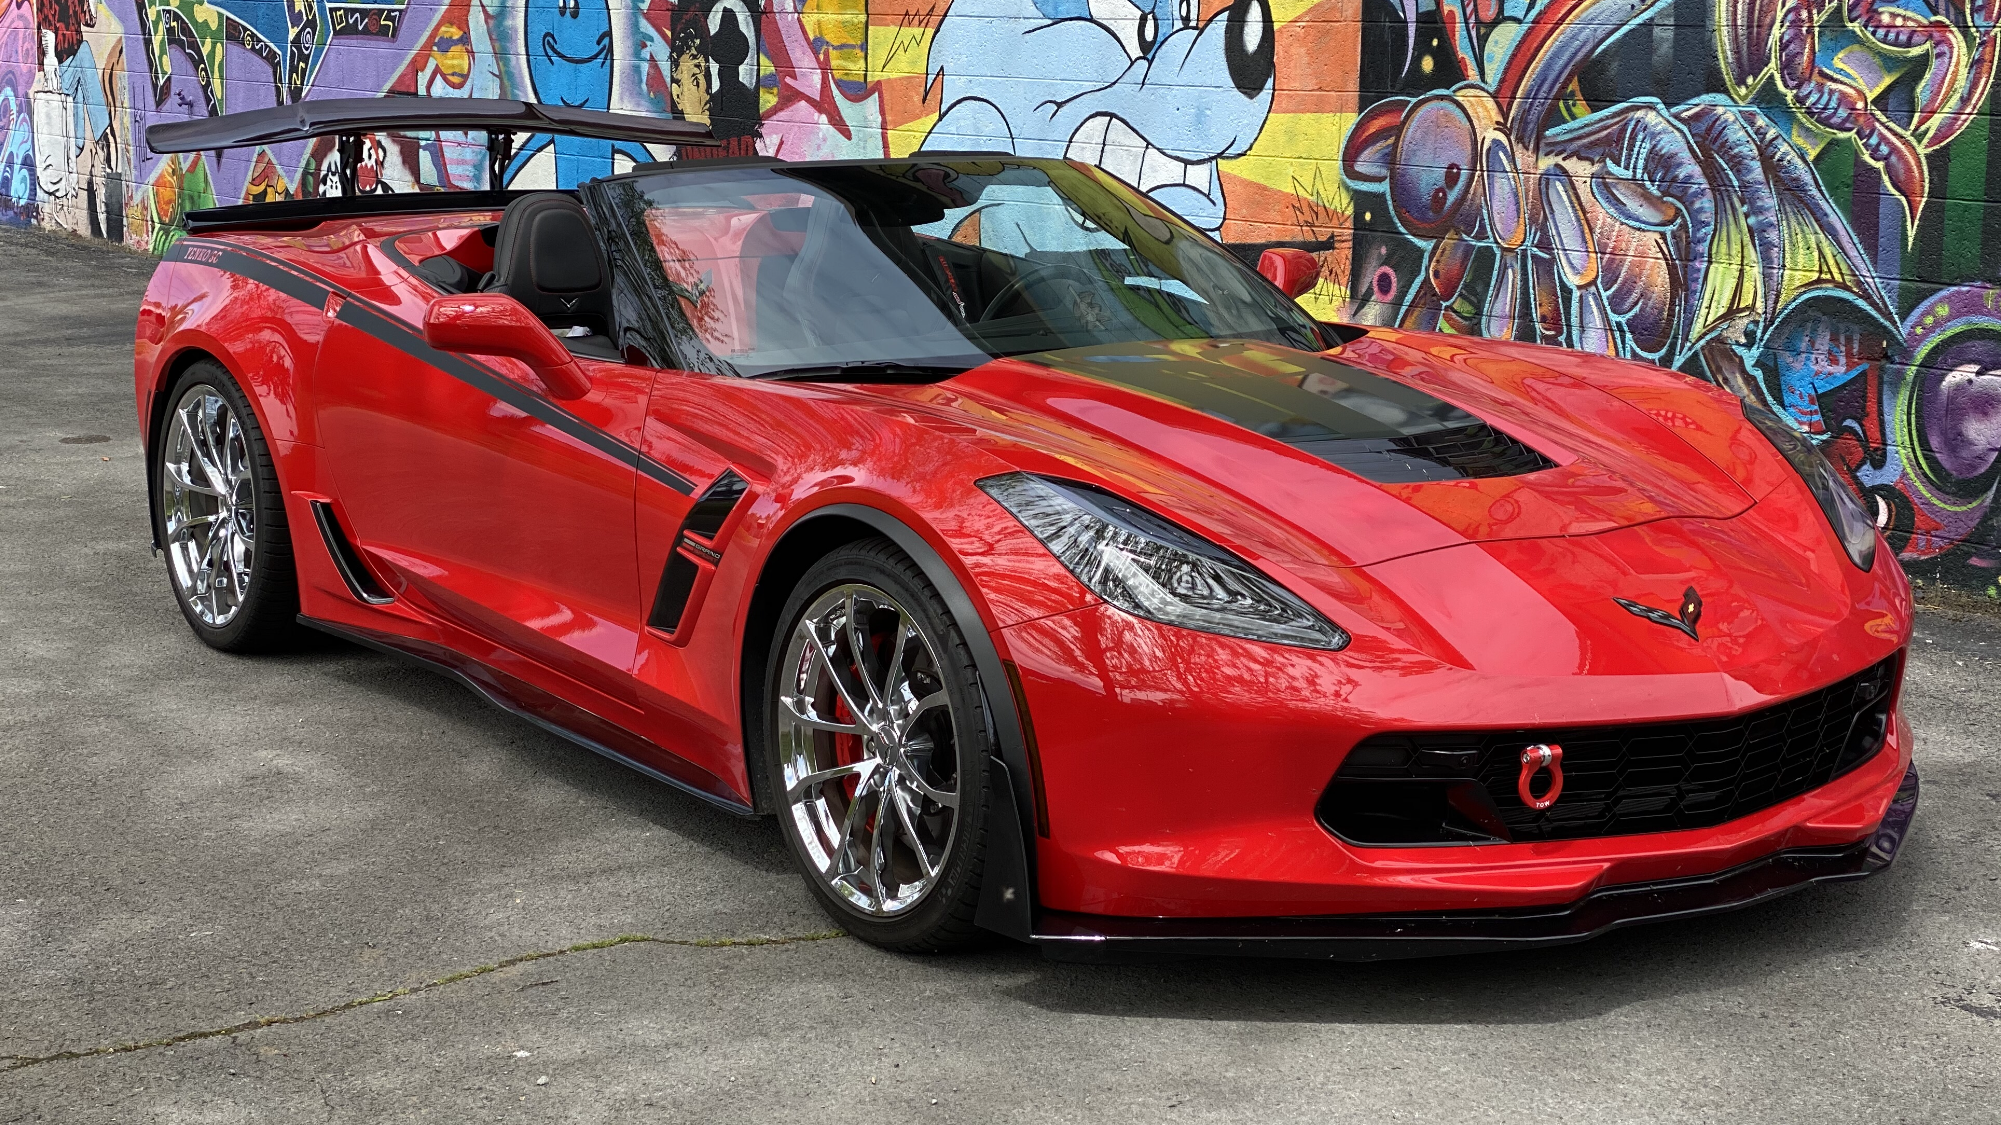 Pin By Mike Oaks On C7 Grand Sport Corvette Red Corvette Chevrolet Corvette Corvette